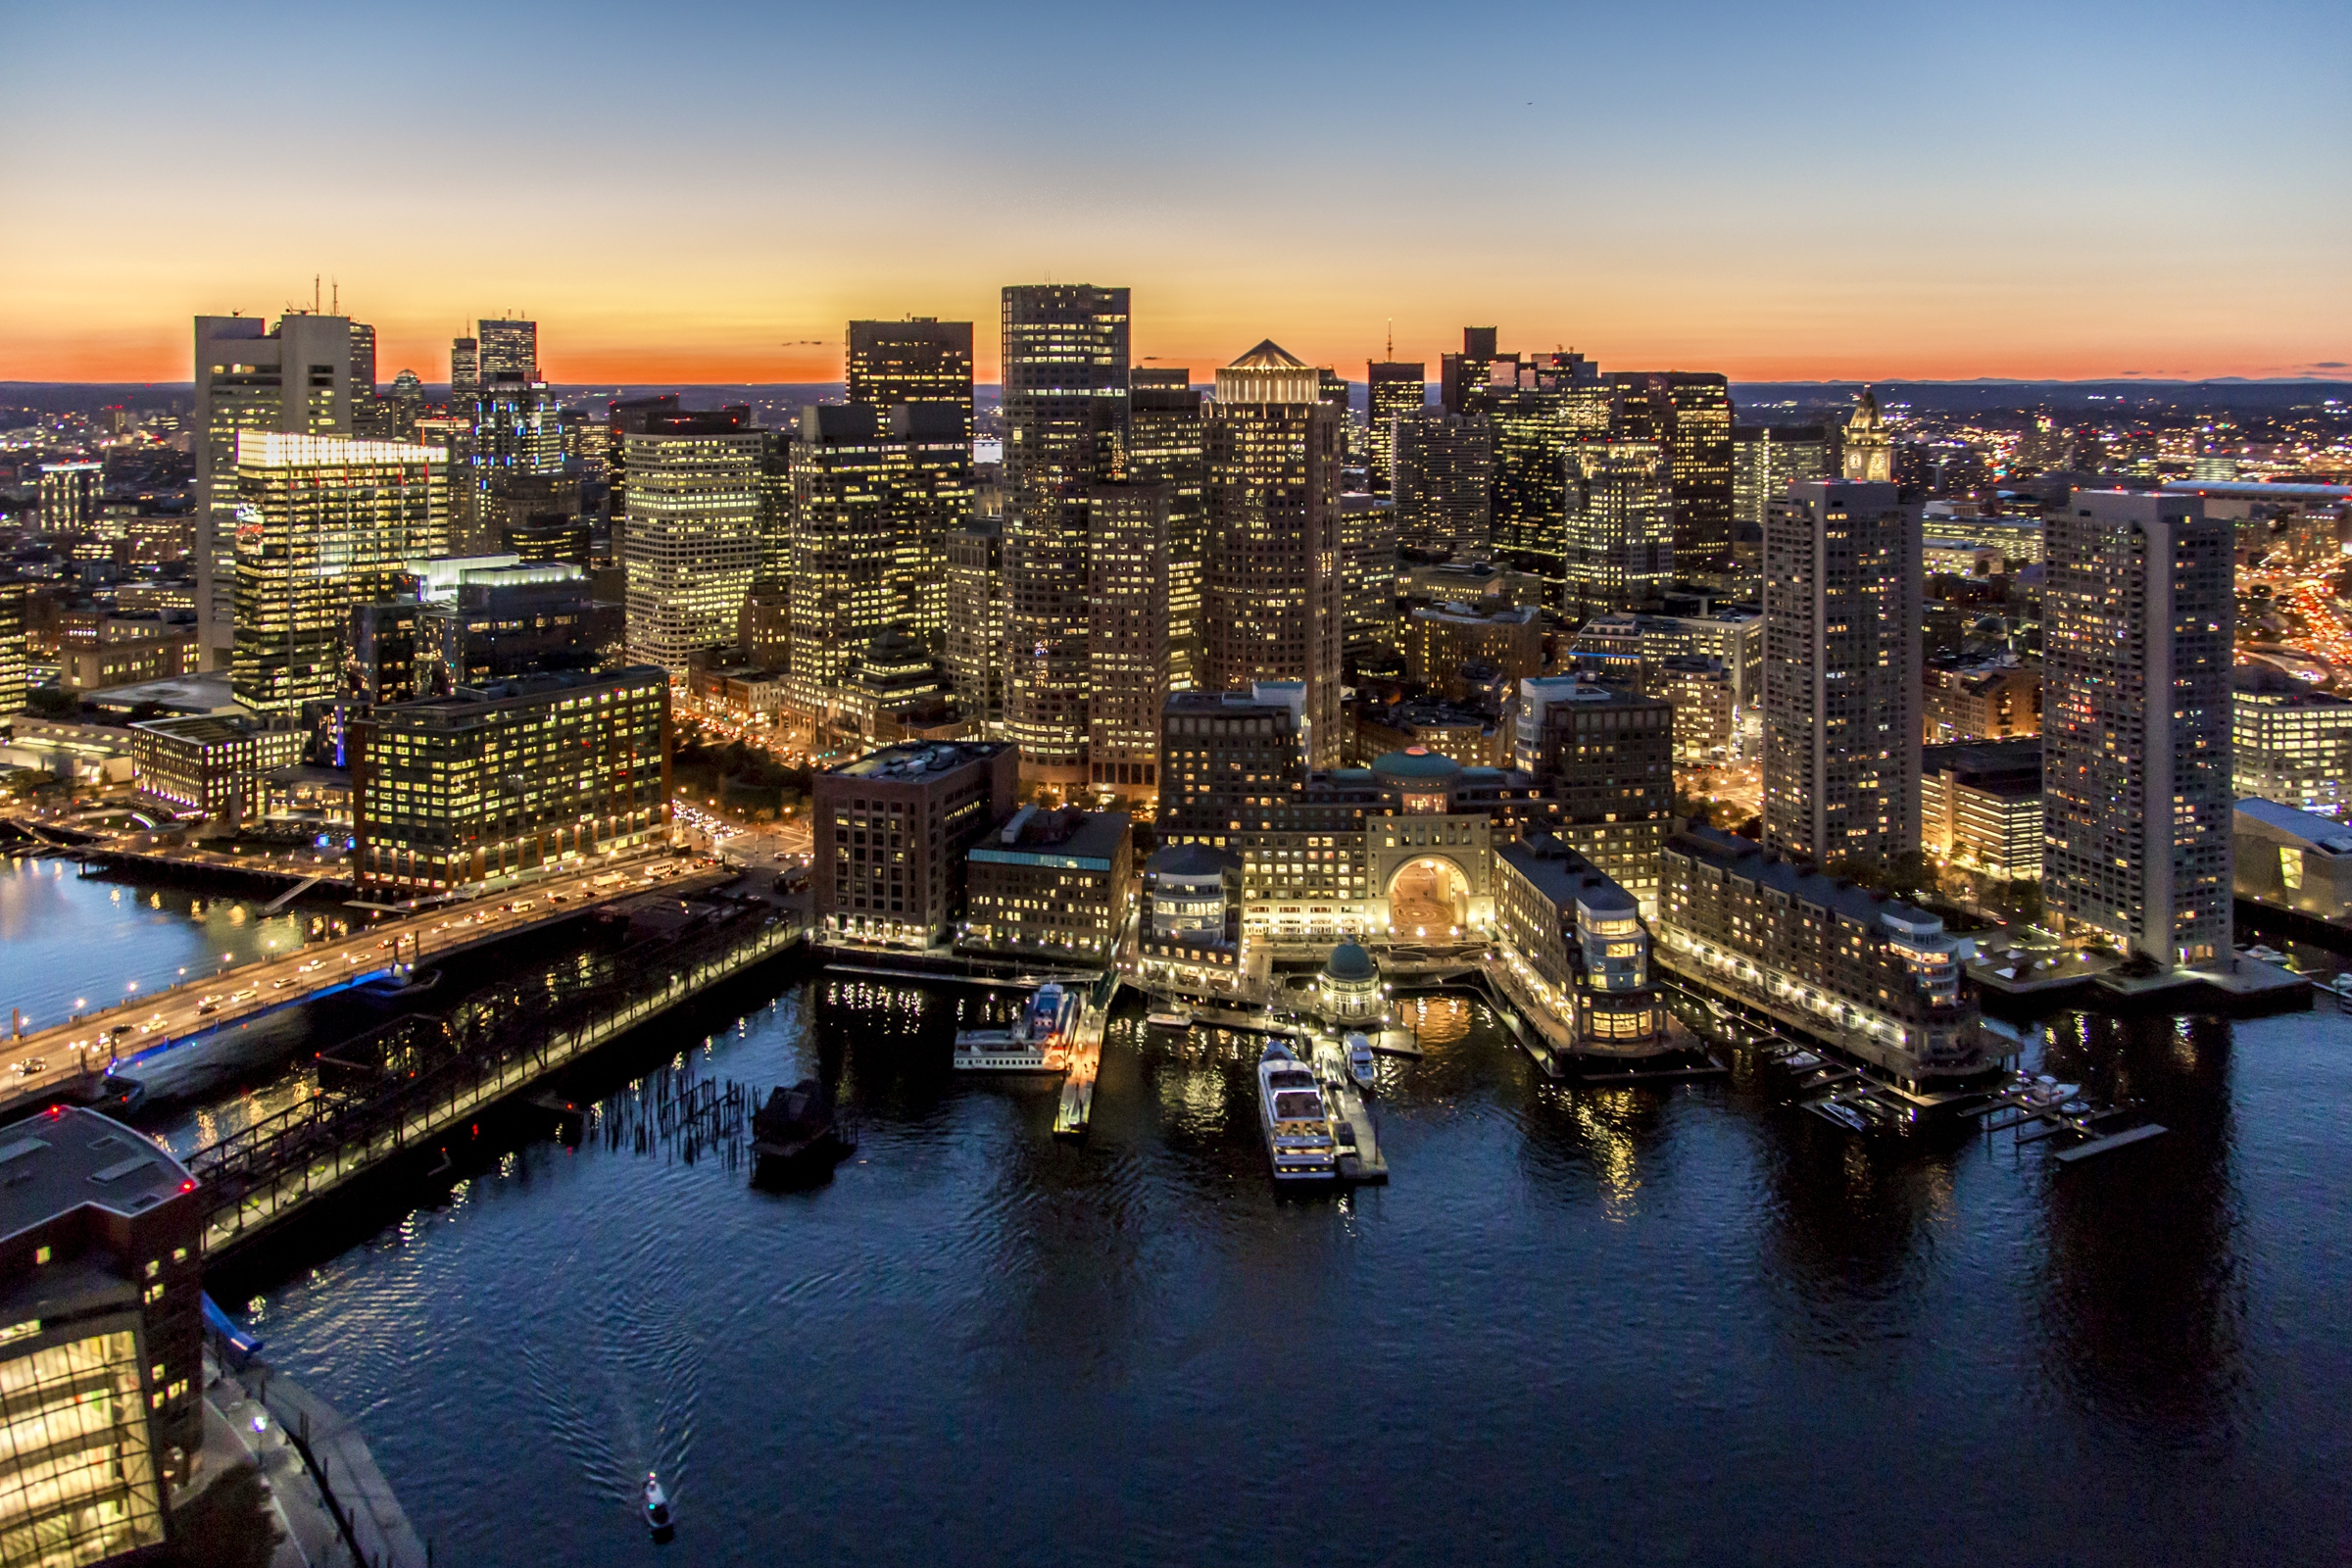 boston wallpapers images pictures backgrounds